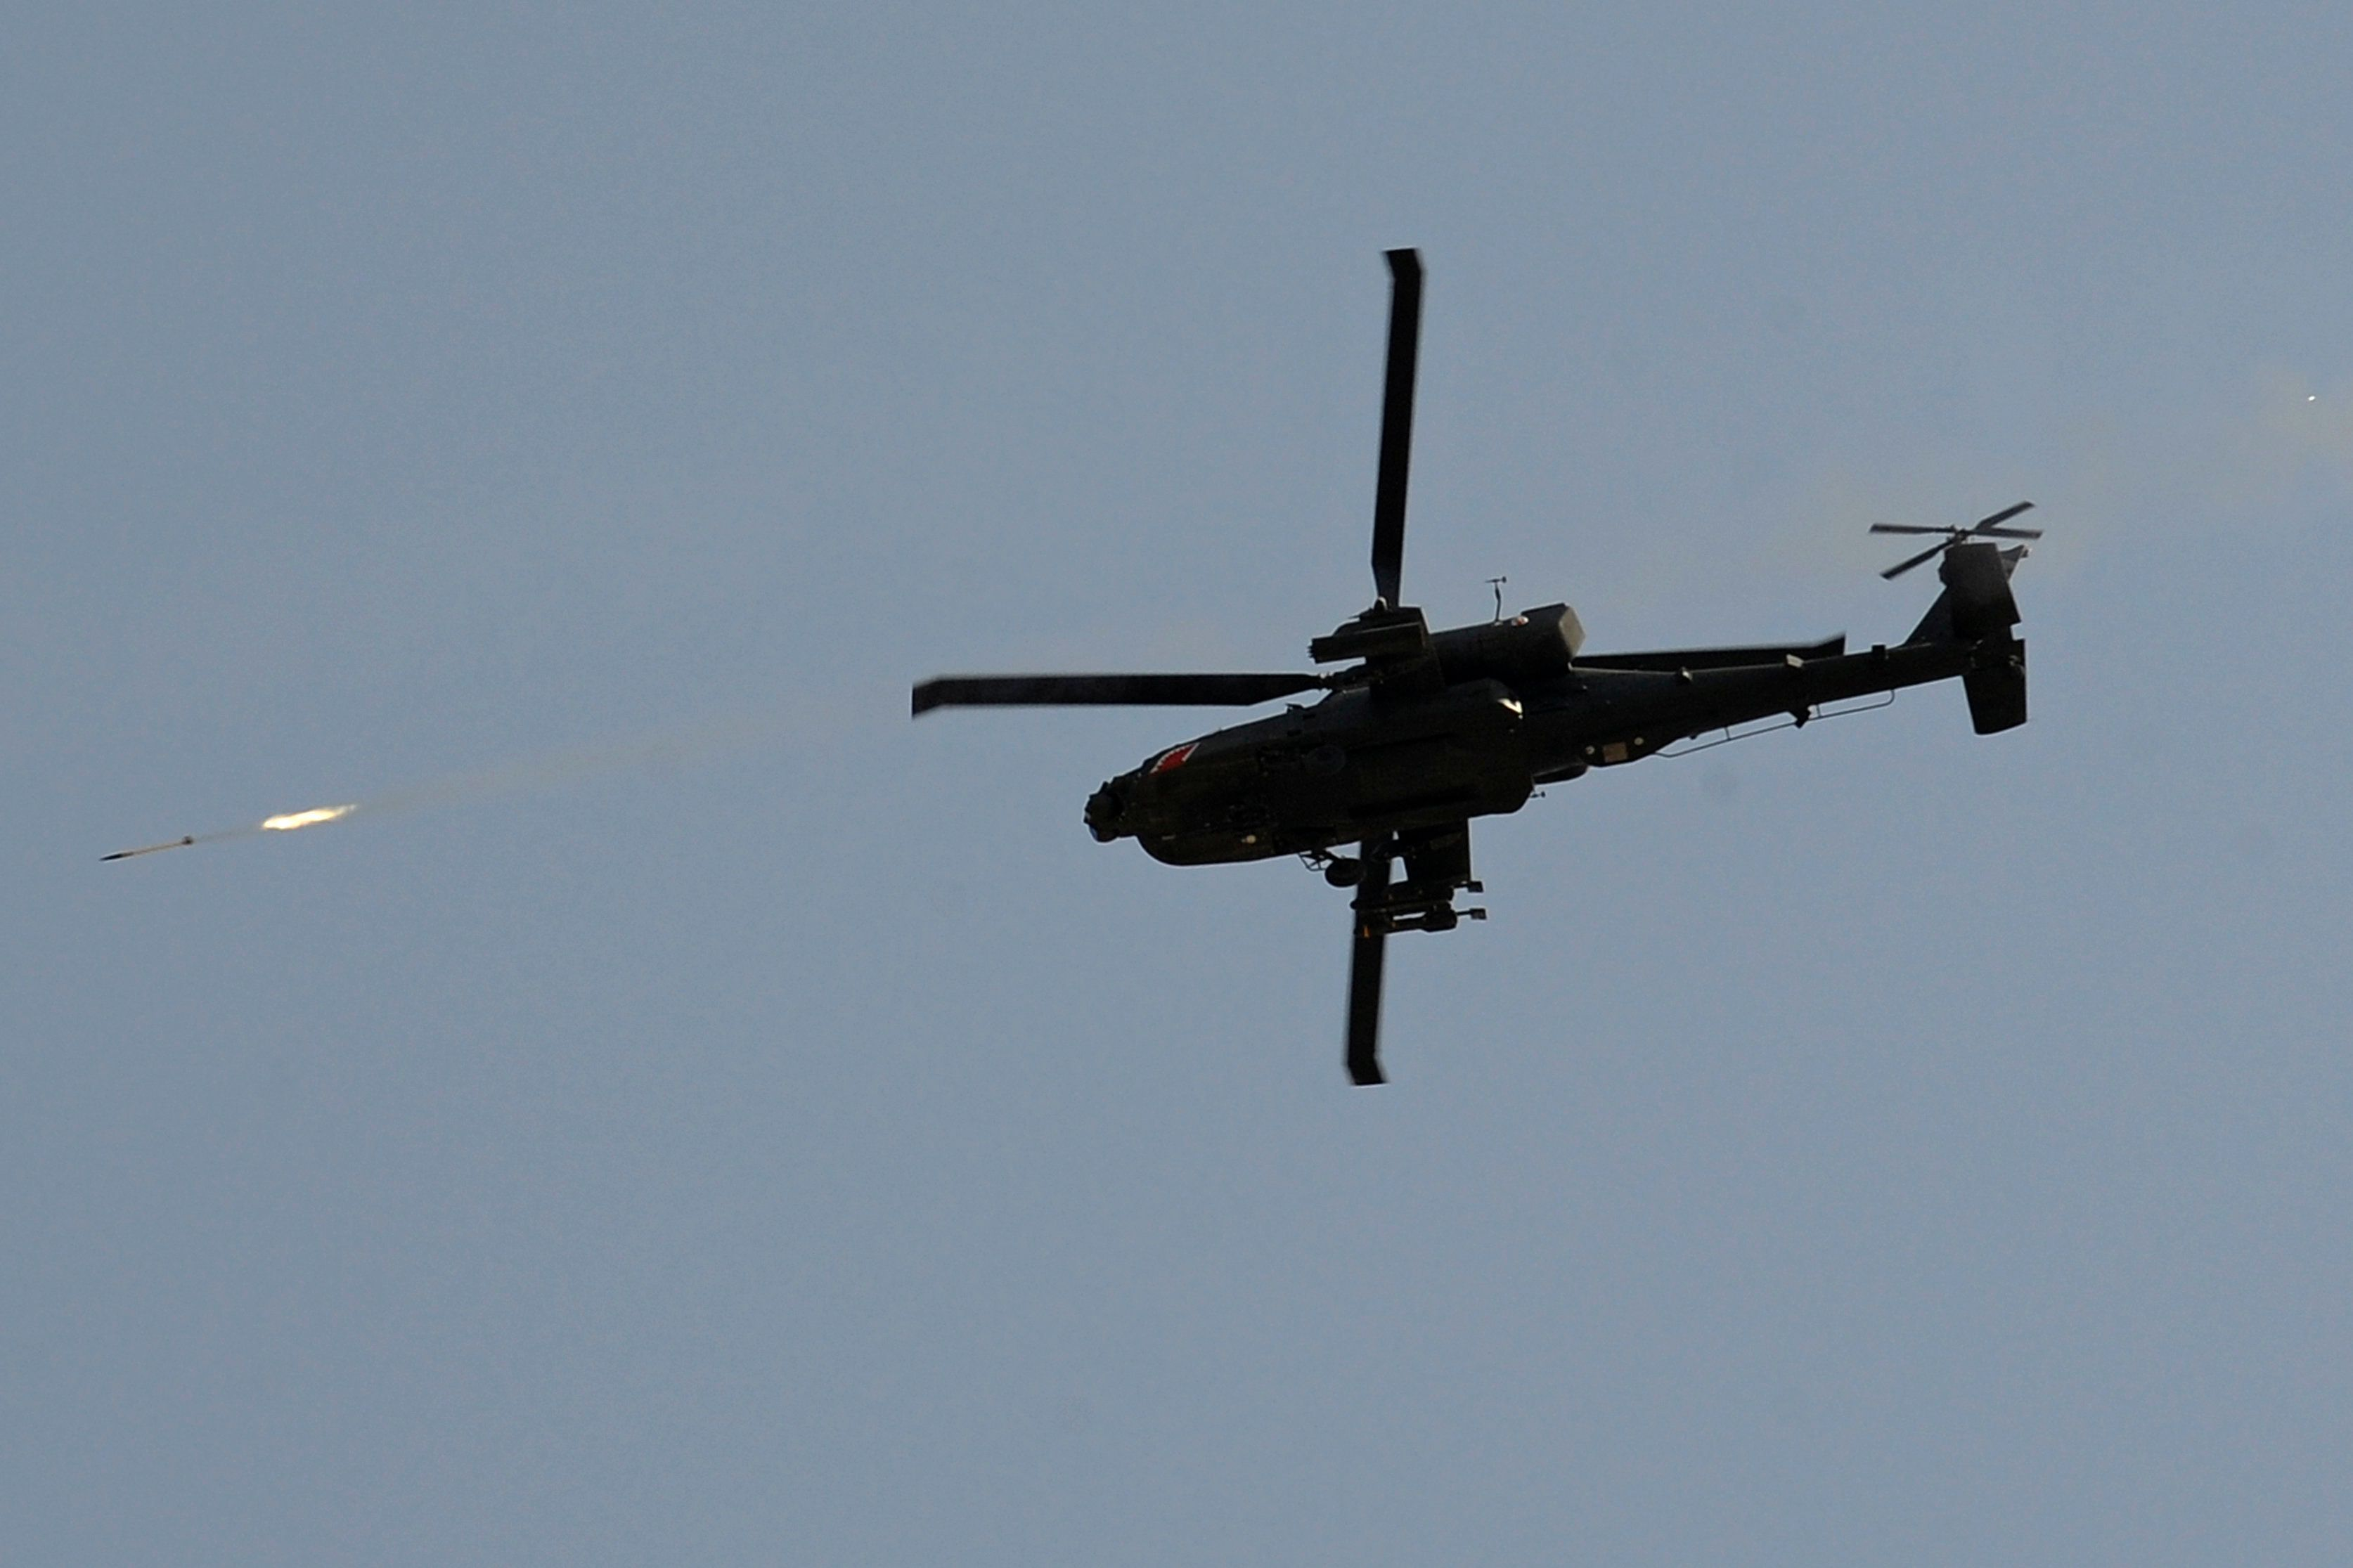 The pilots were from a helicopter battalion at Ellington Field in Houston.